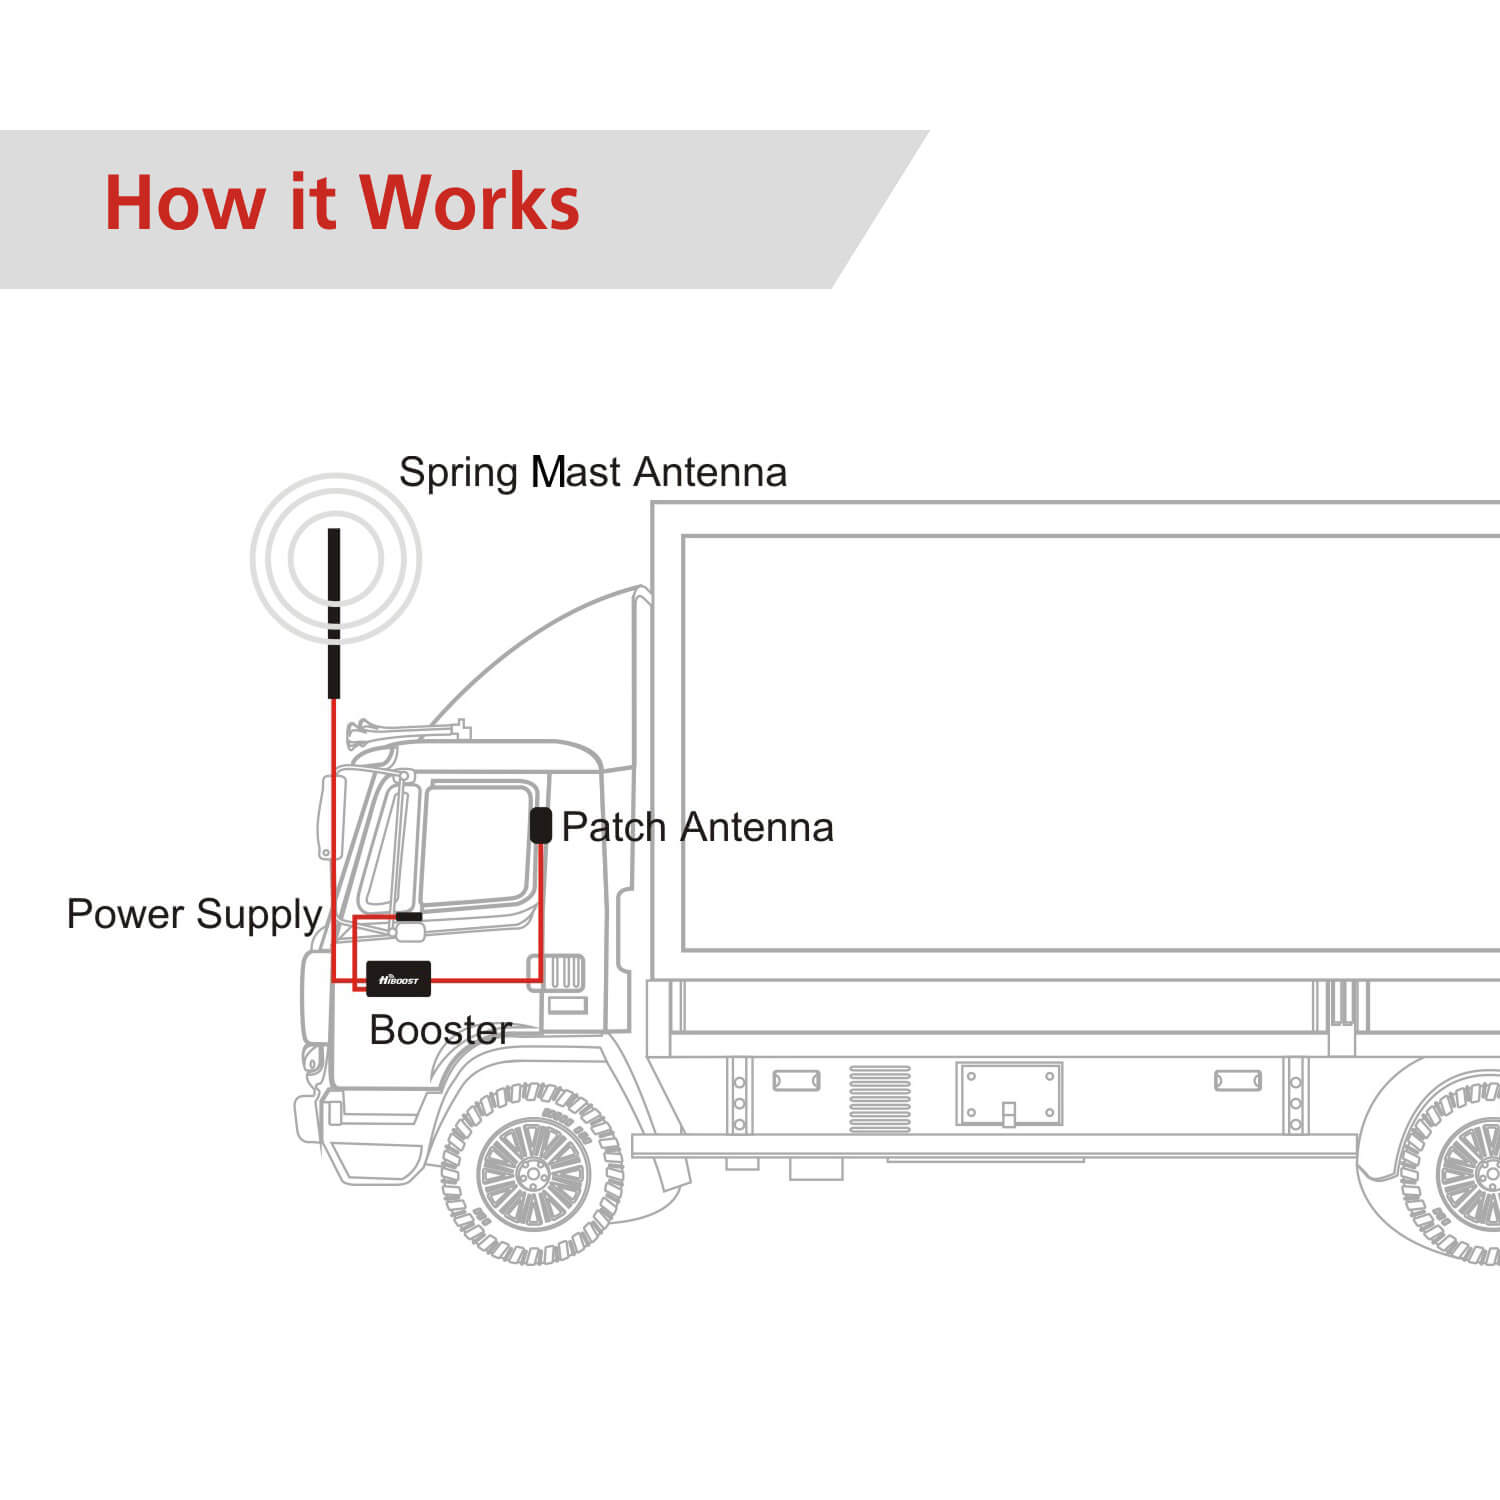 Hiboost Travel 4G 2.0 truck-how it works